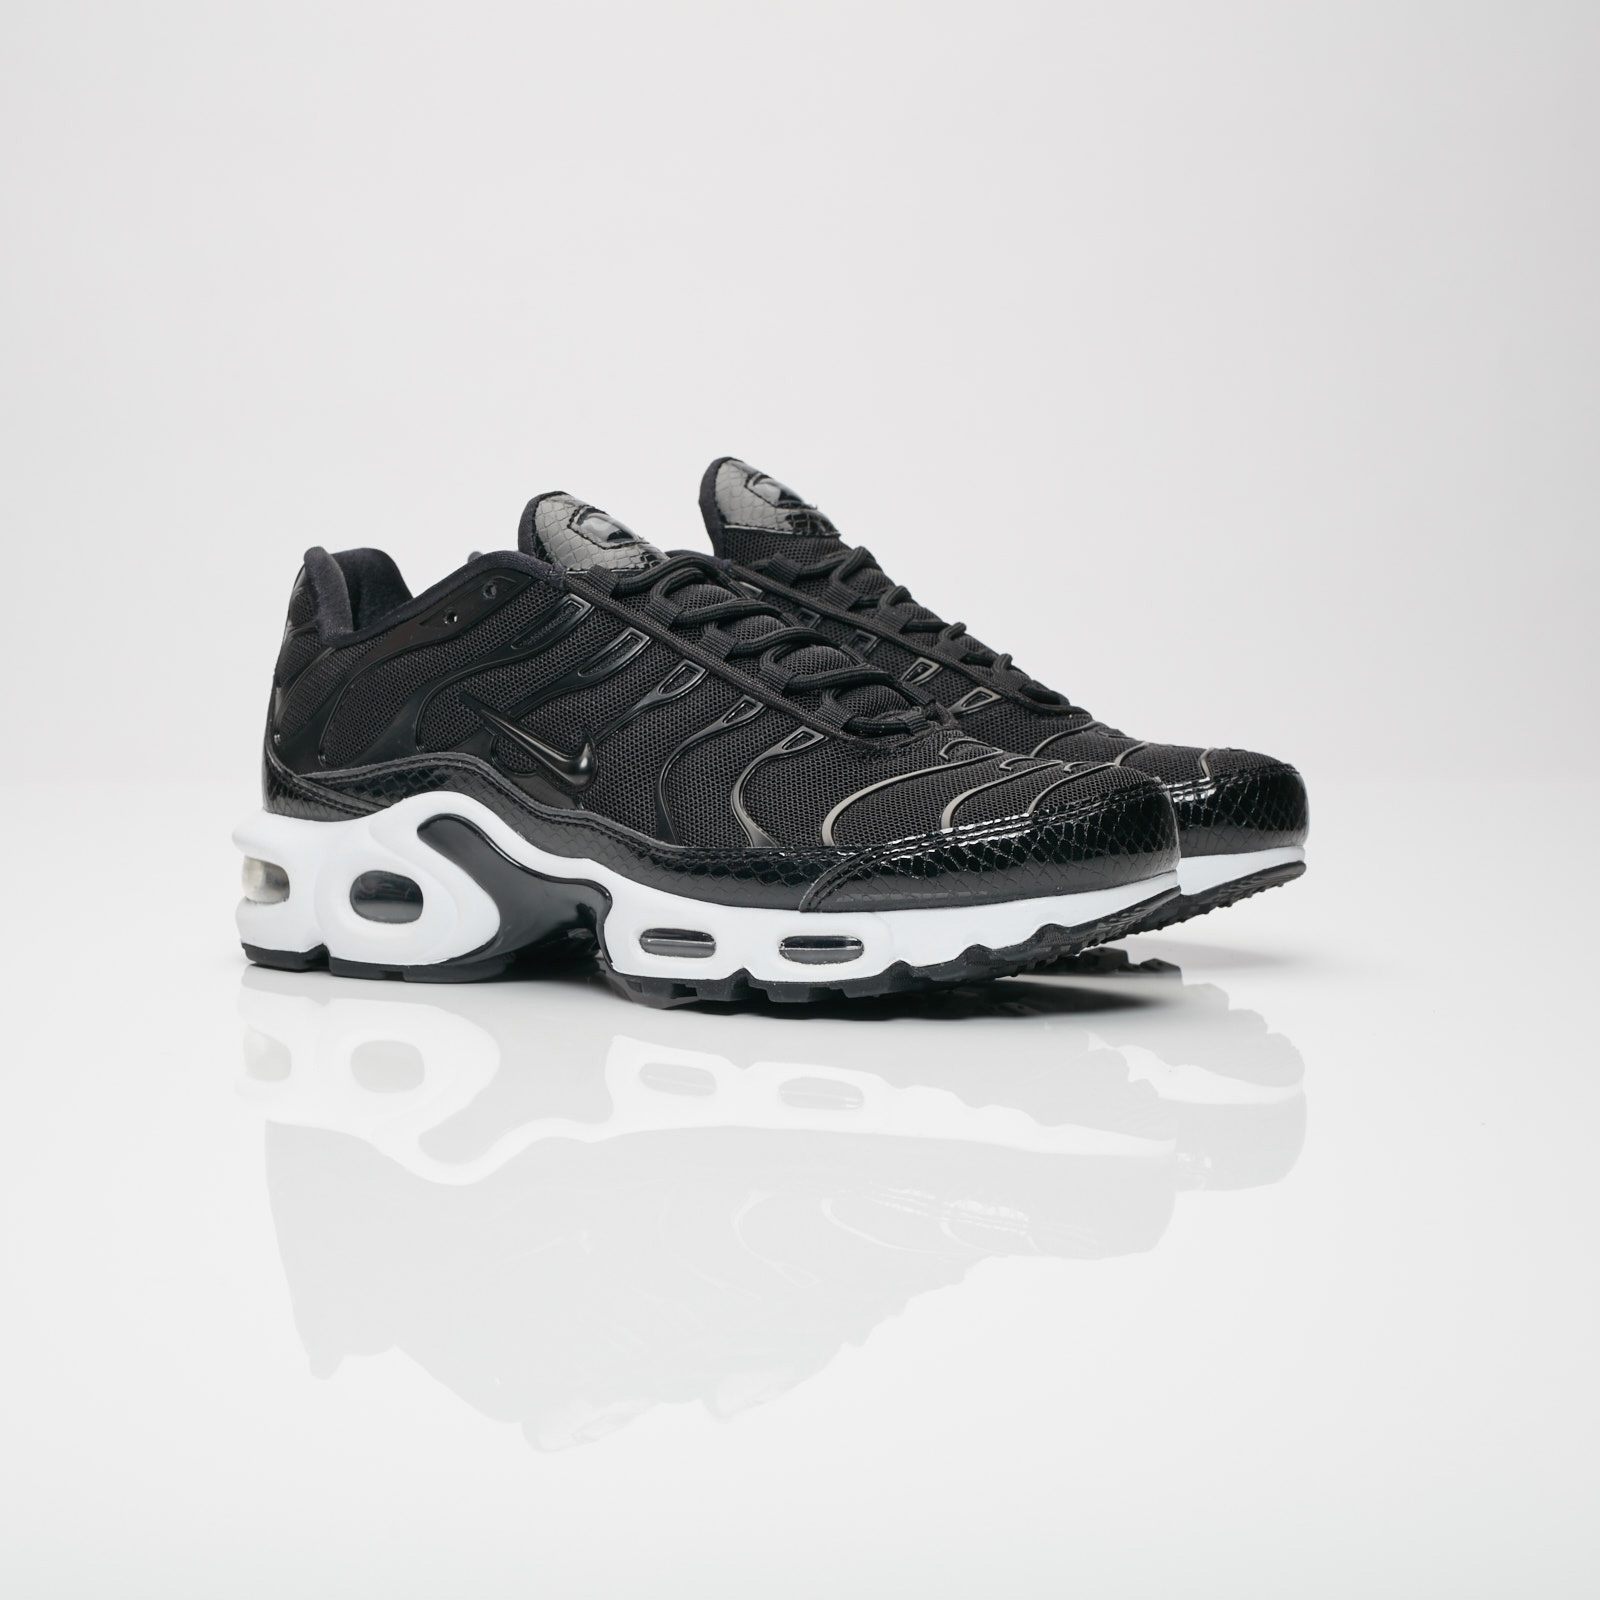 adbc2a76eb Nike Wmns Air Max Plus SE - 862201-004 - Sneakersnstuff | sneakers ...